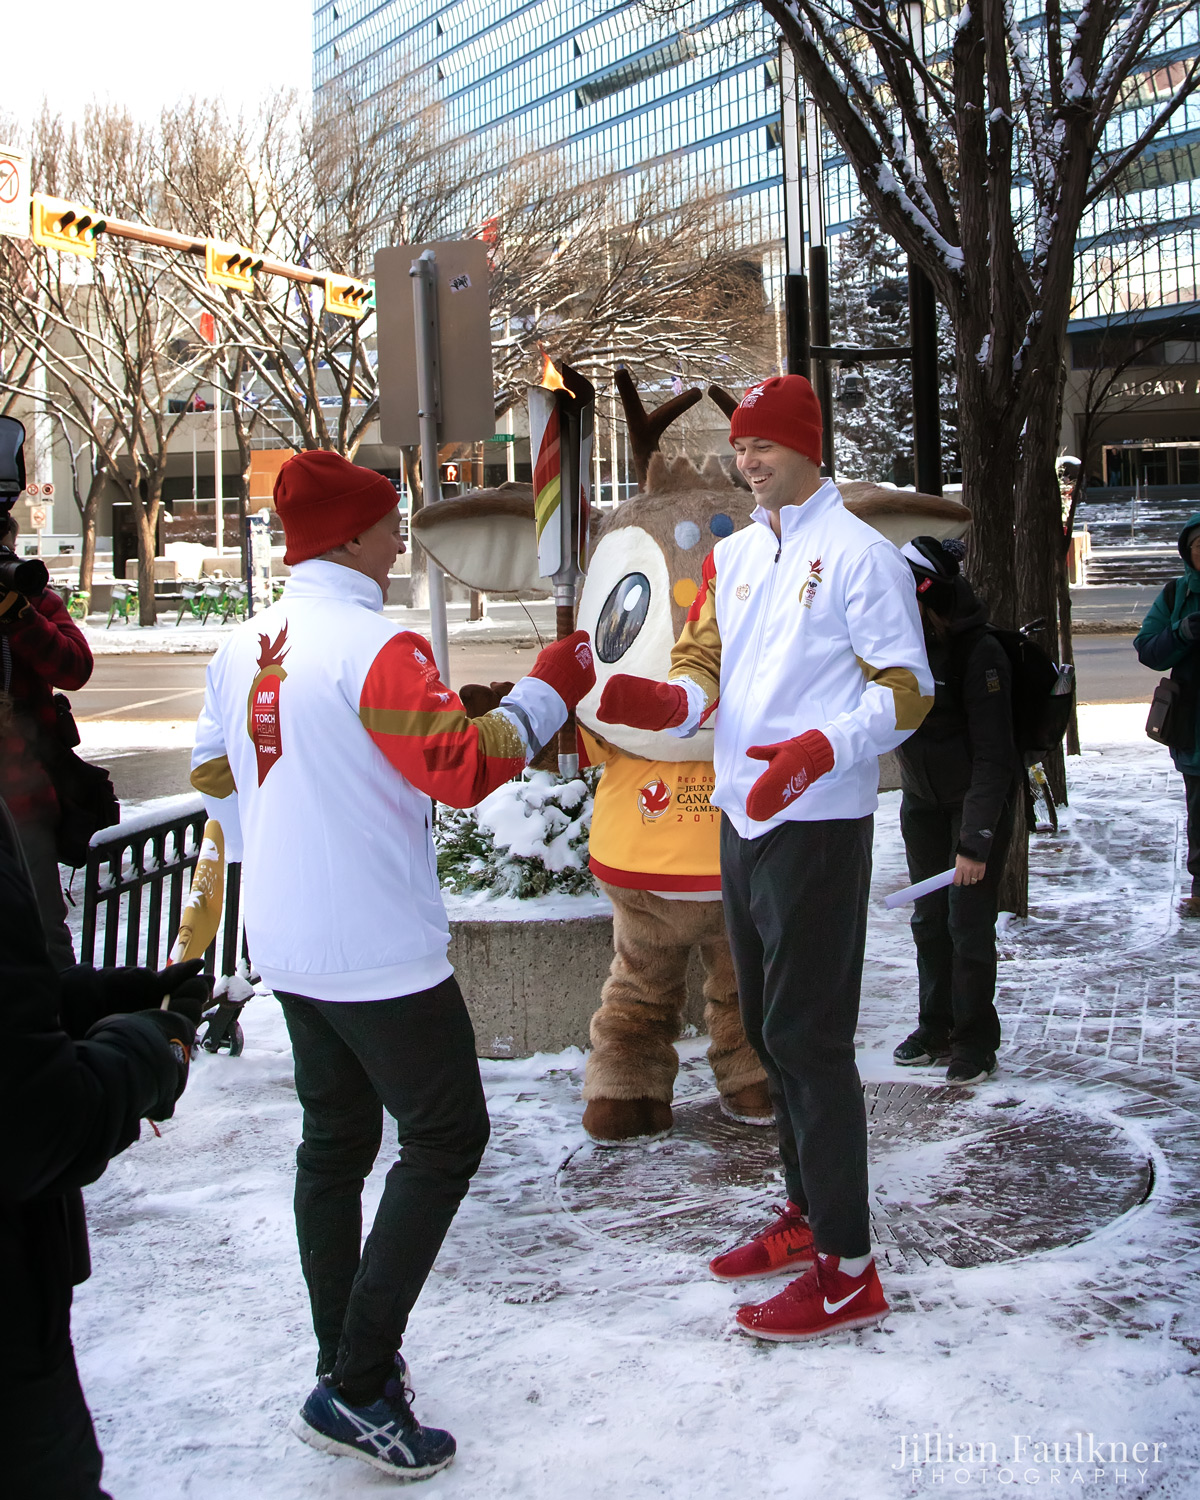 2019 Canadian Winter Games Torch Relay - Nova Chemicals Sponsor - All Images © Jillian Faulkner Photography - Jillian Faulkner is a professional portrait photographer offering newborn, child and family photography in Calgary, Alberta and surrounding communities.